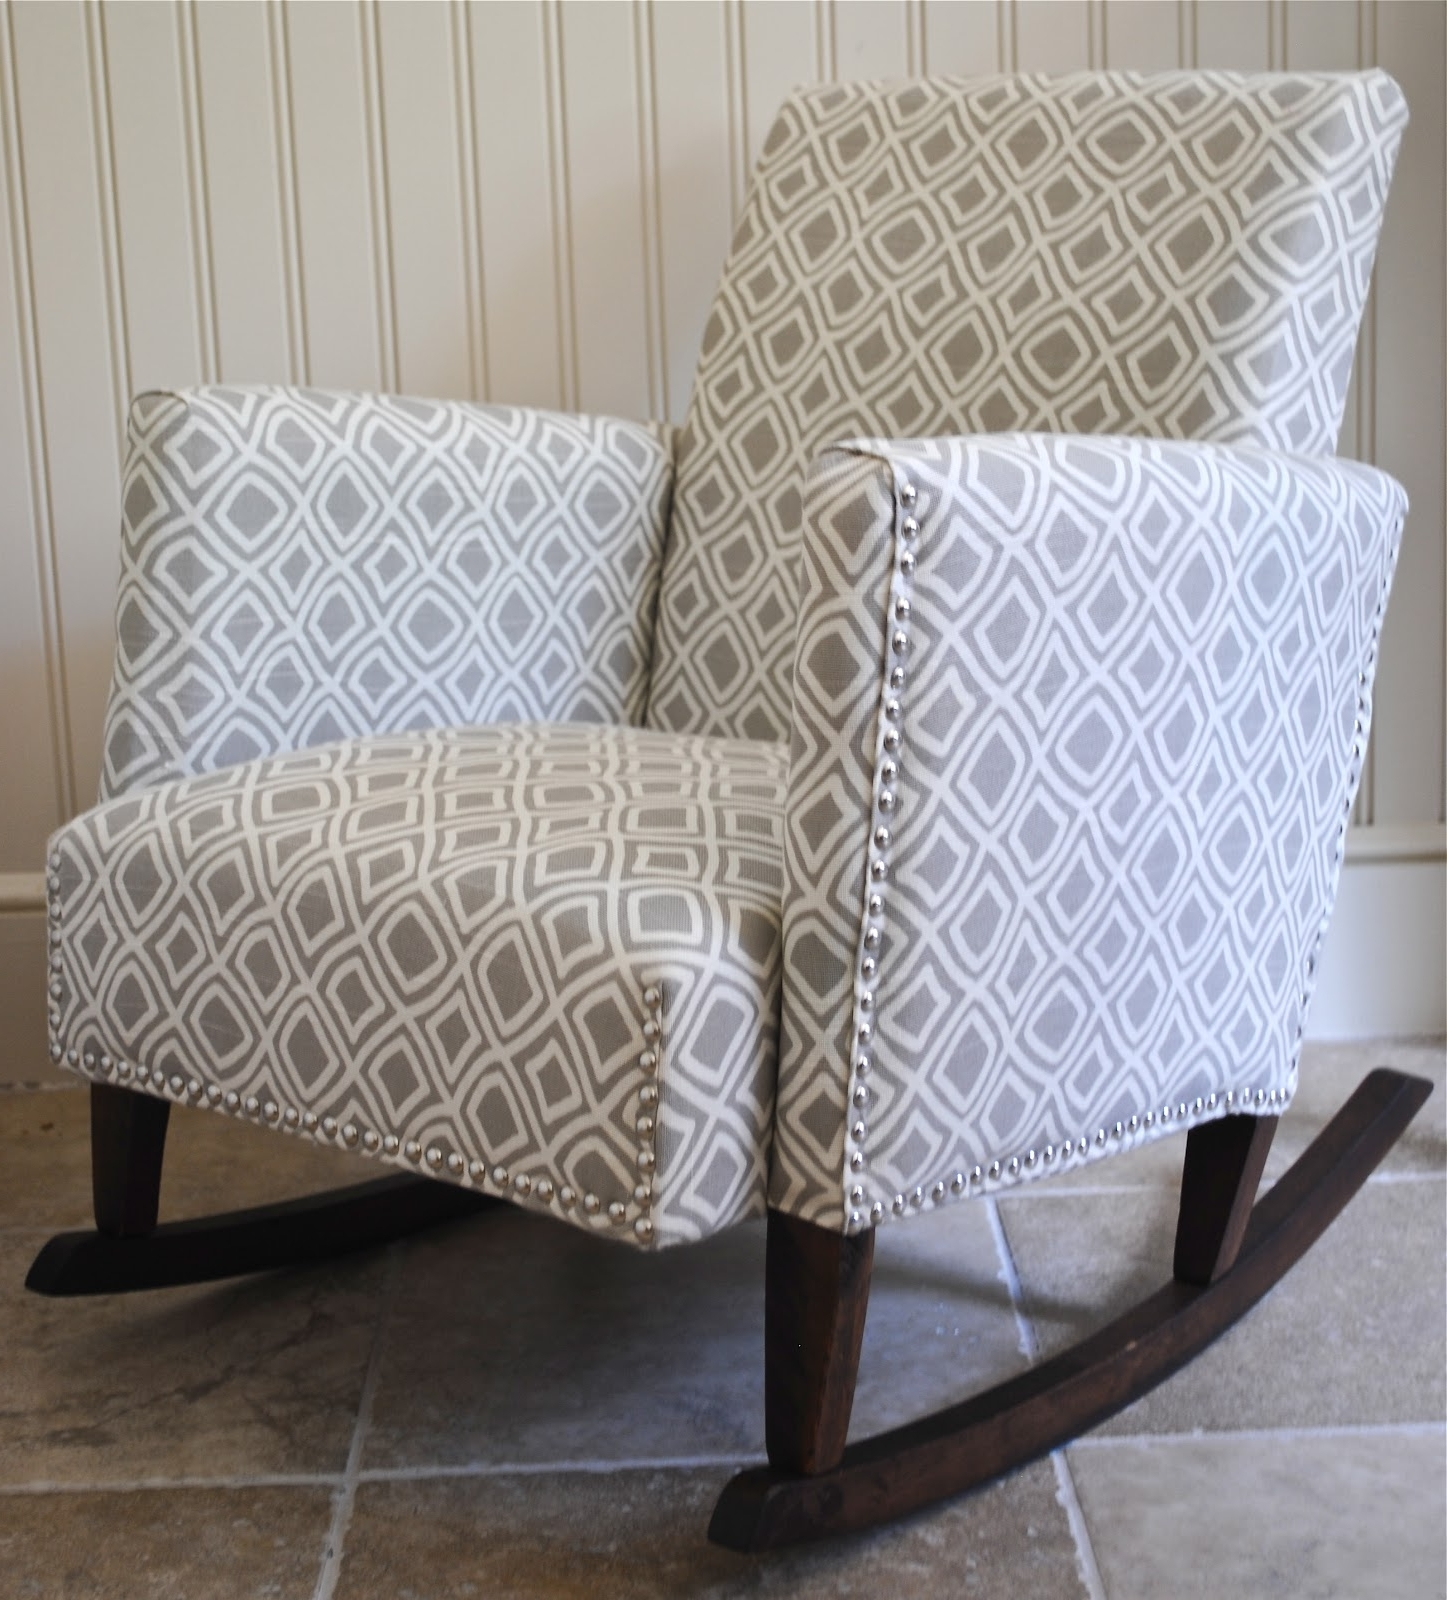 Popular Upholstered Rocking Chairs With Regard To Diy}Ish Upholstered Child's Rocking Chair – The Chronicles Of Home (View 3 of 15)